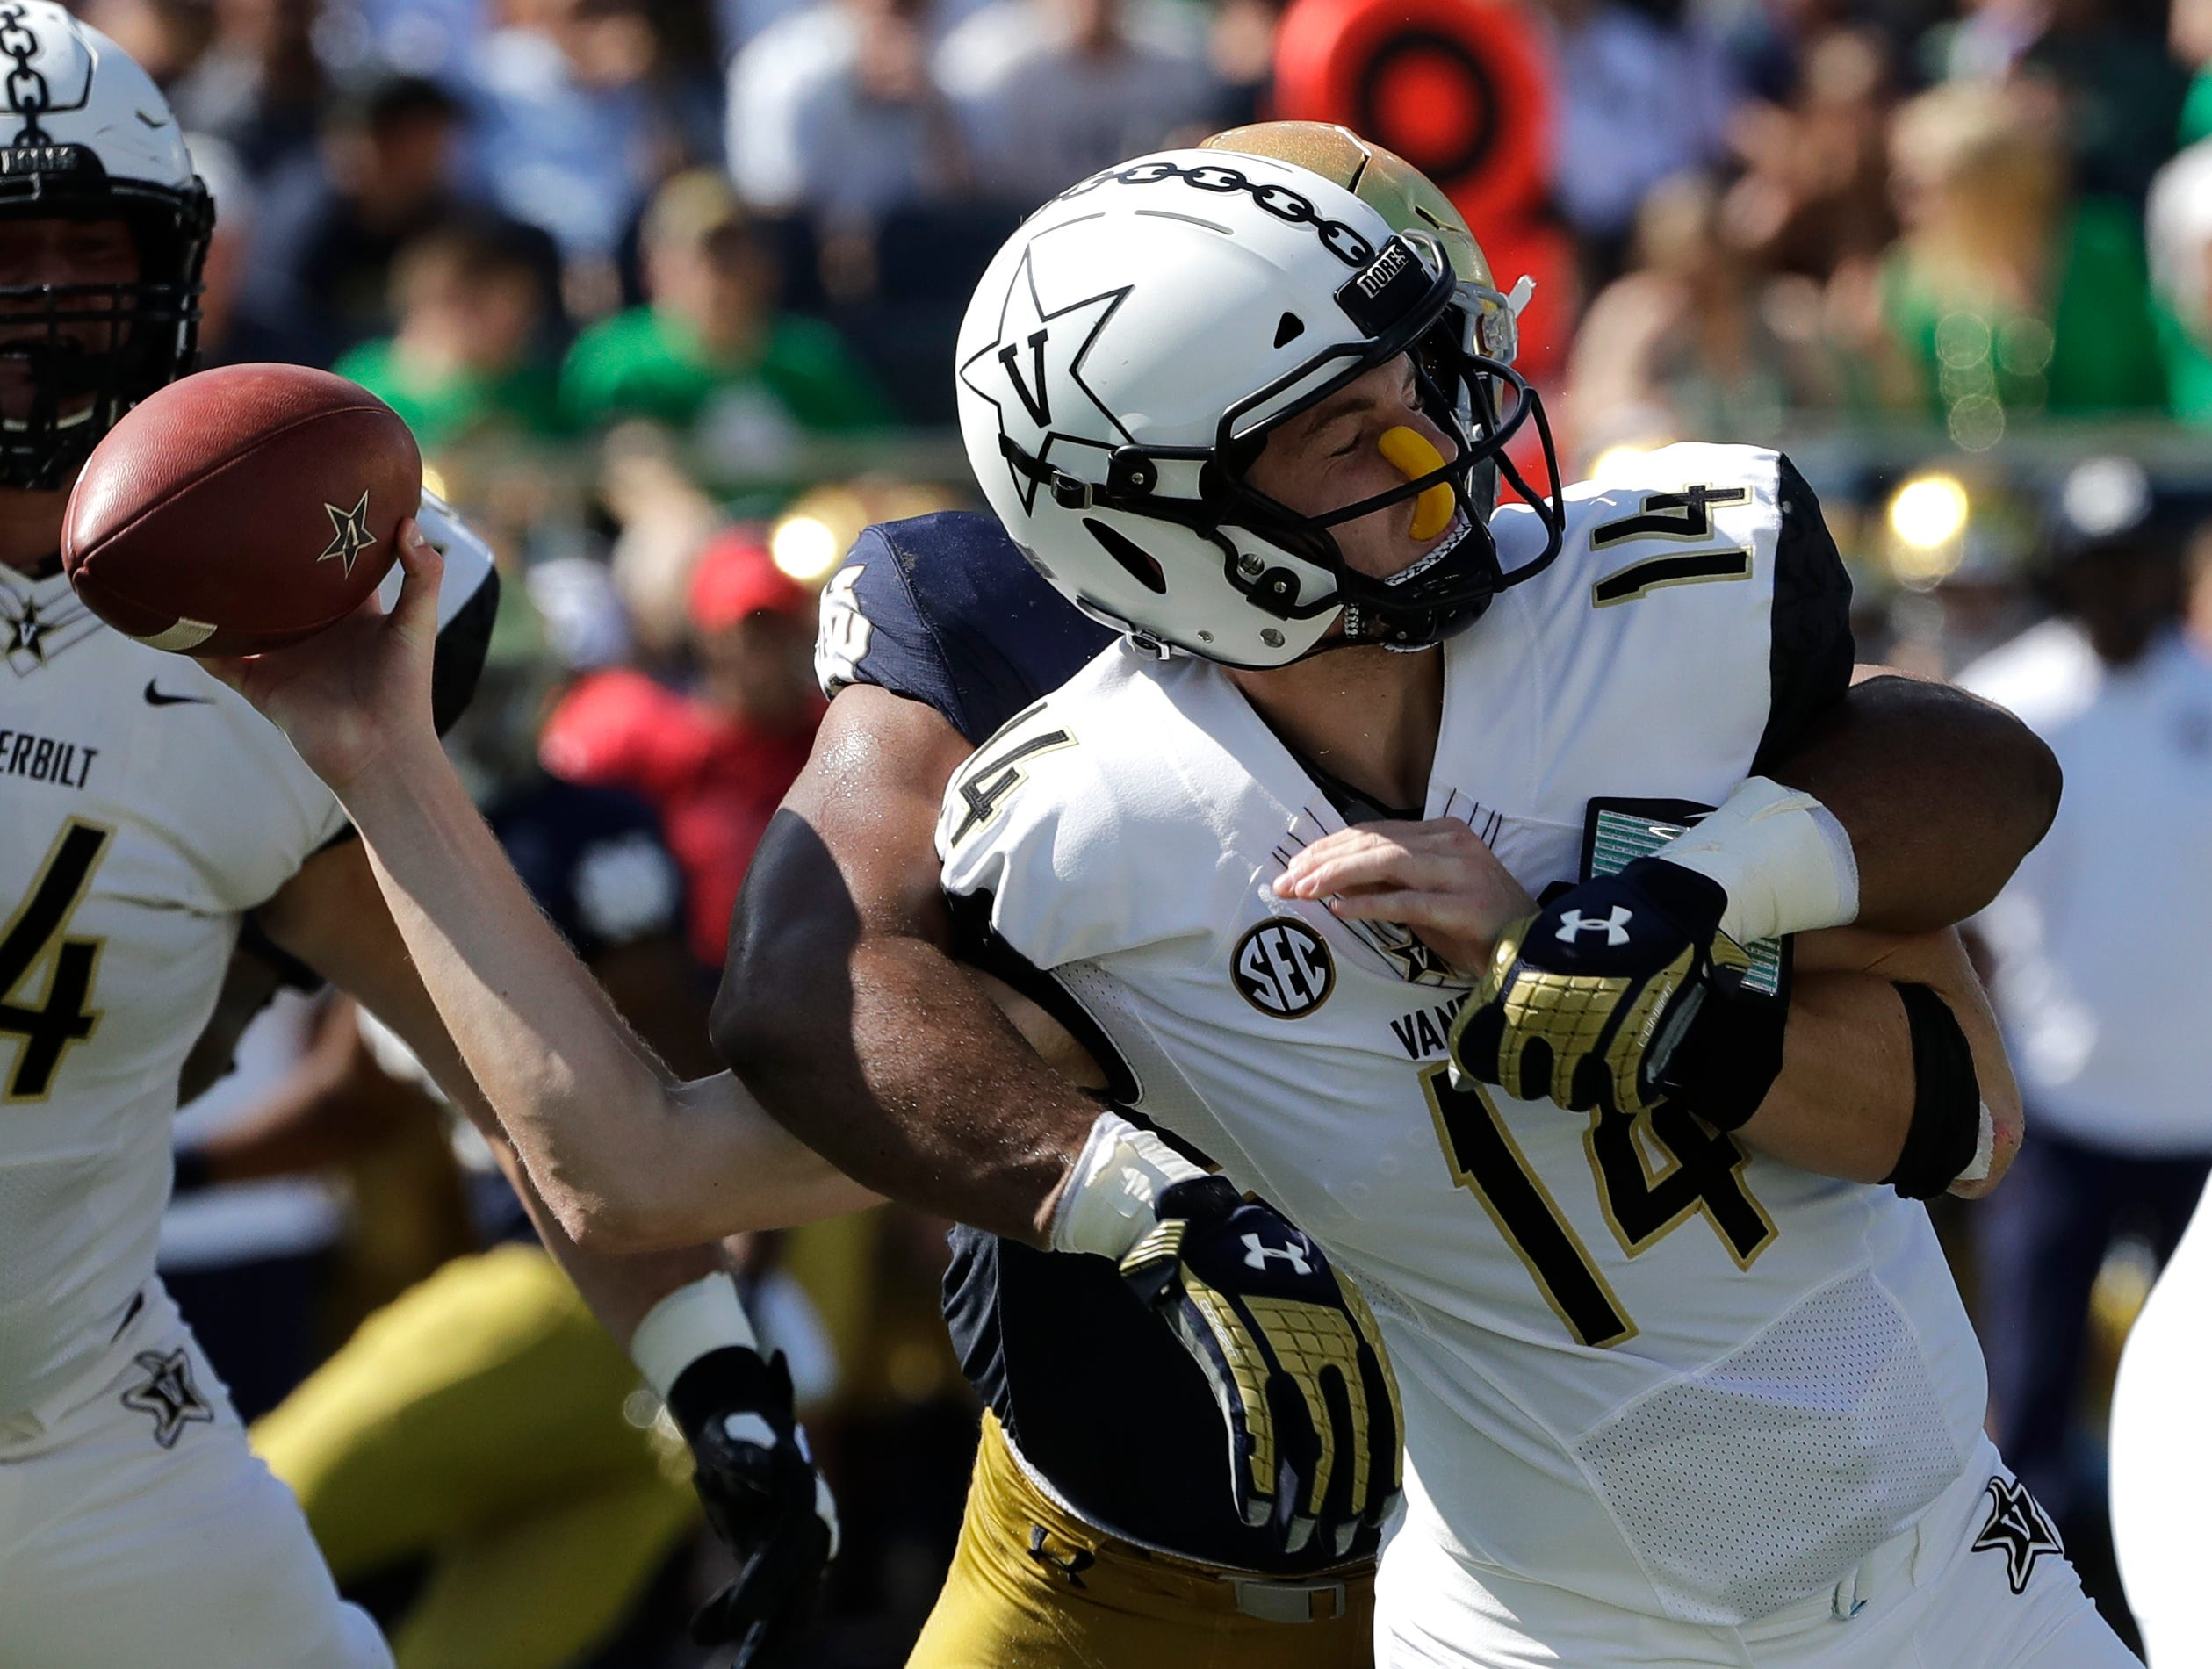 Vanderbilt quarterback Kyle Shurmur (14) is sacked by Notre Dame defensive line Jerry Tilery during the first half of an NCAA college football game in South Bend, Ind., Saturday, Sept. 15, 2018. (AP Photo/Nam Y. Huh)